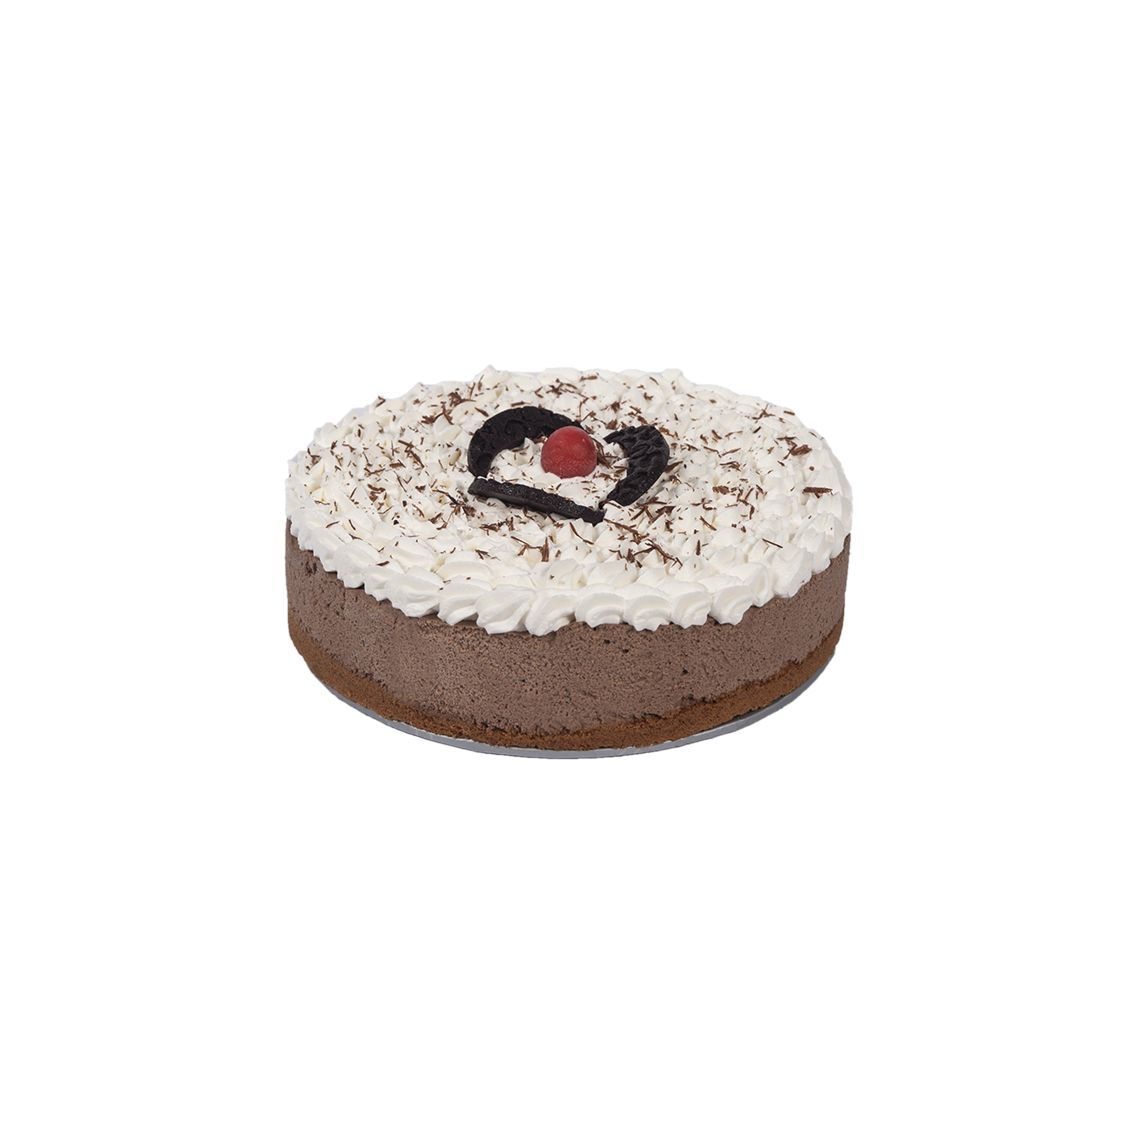 Kitchen Cuisine Default Category Cheese Cake Mocha